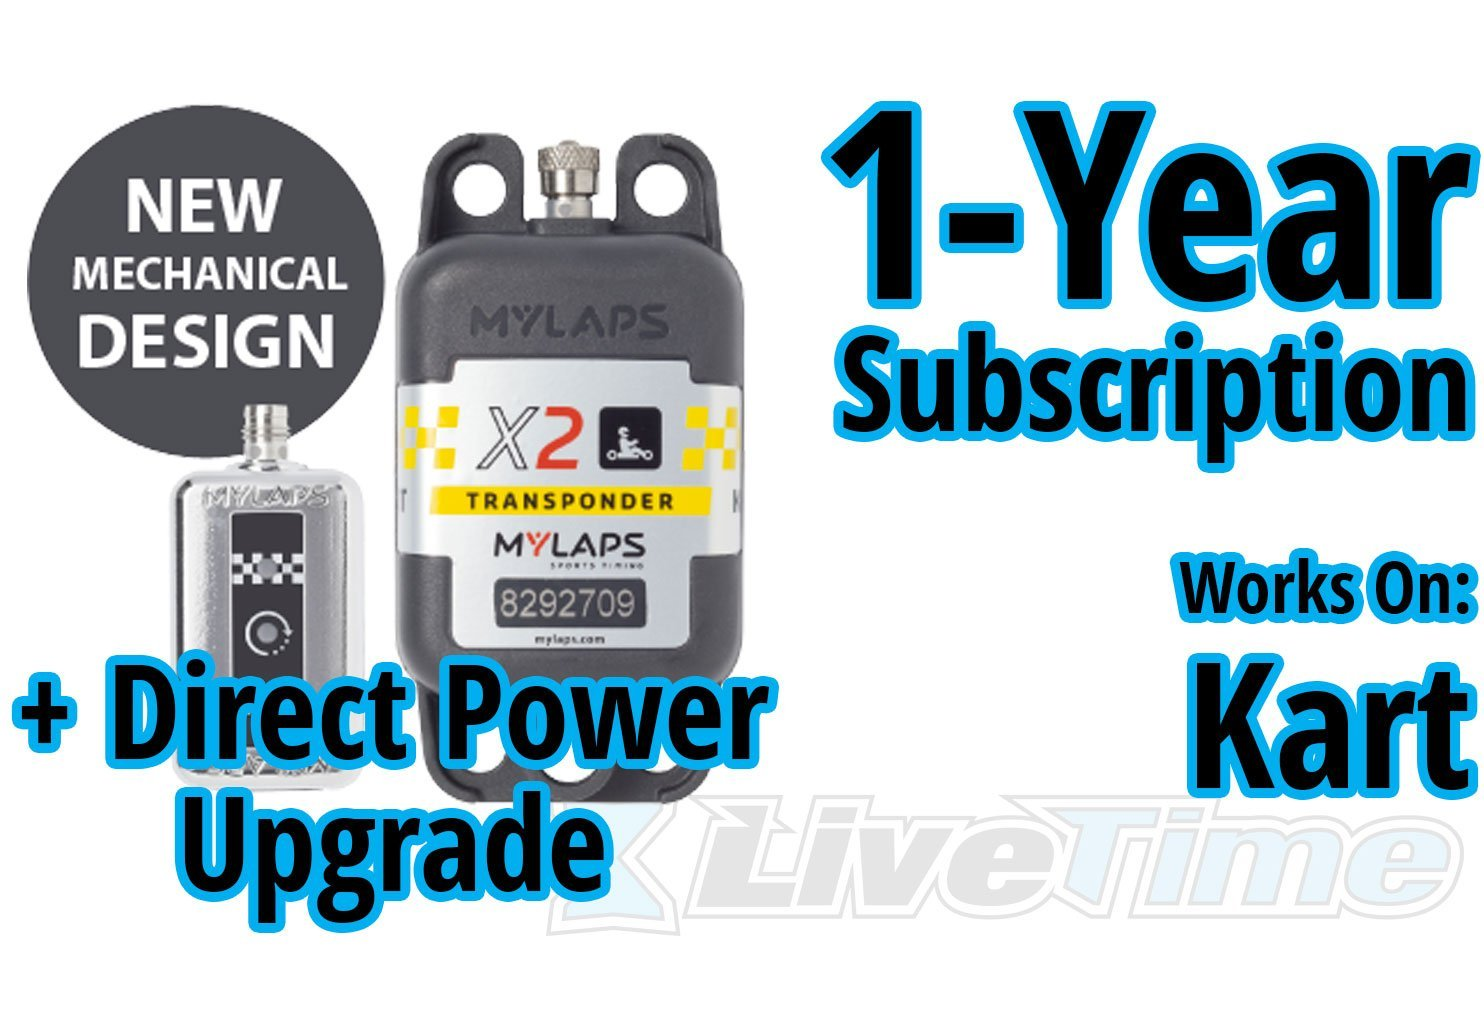 MyLaps X2 Transponder, Direct Power, for Karting, includes 1-Year Subscription